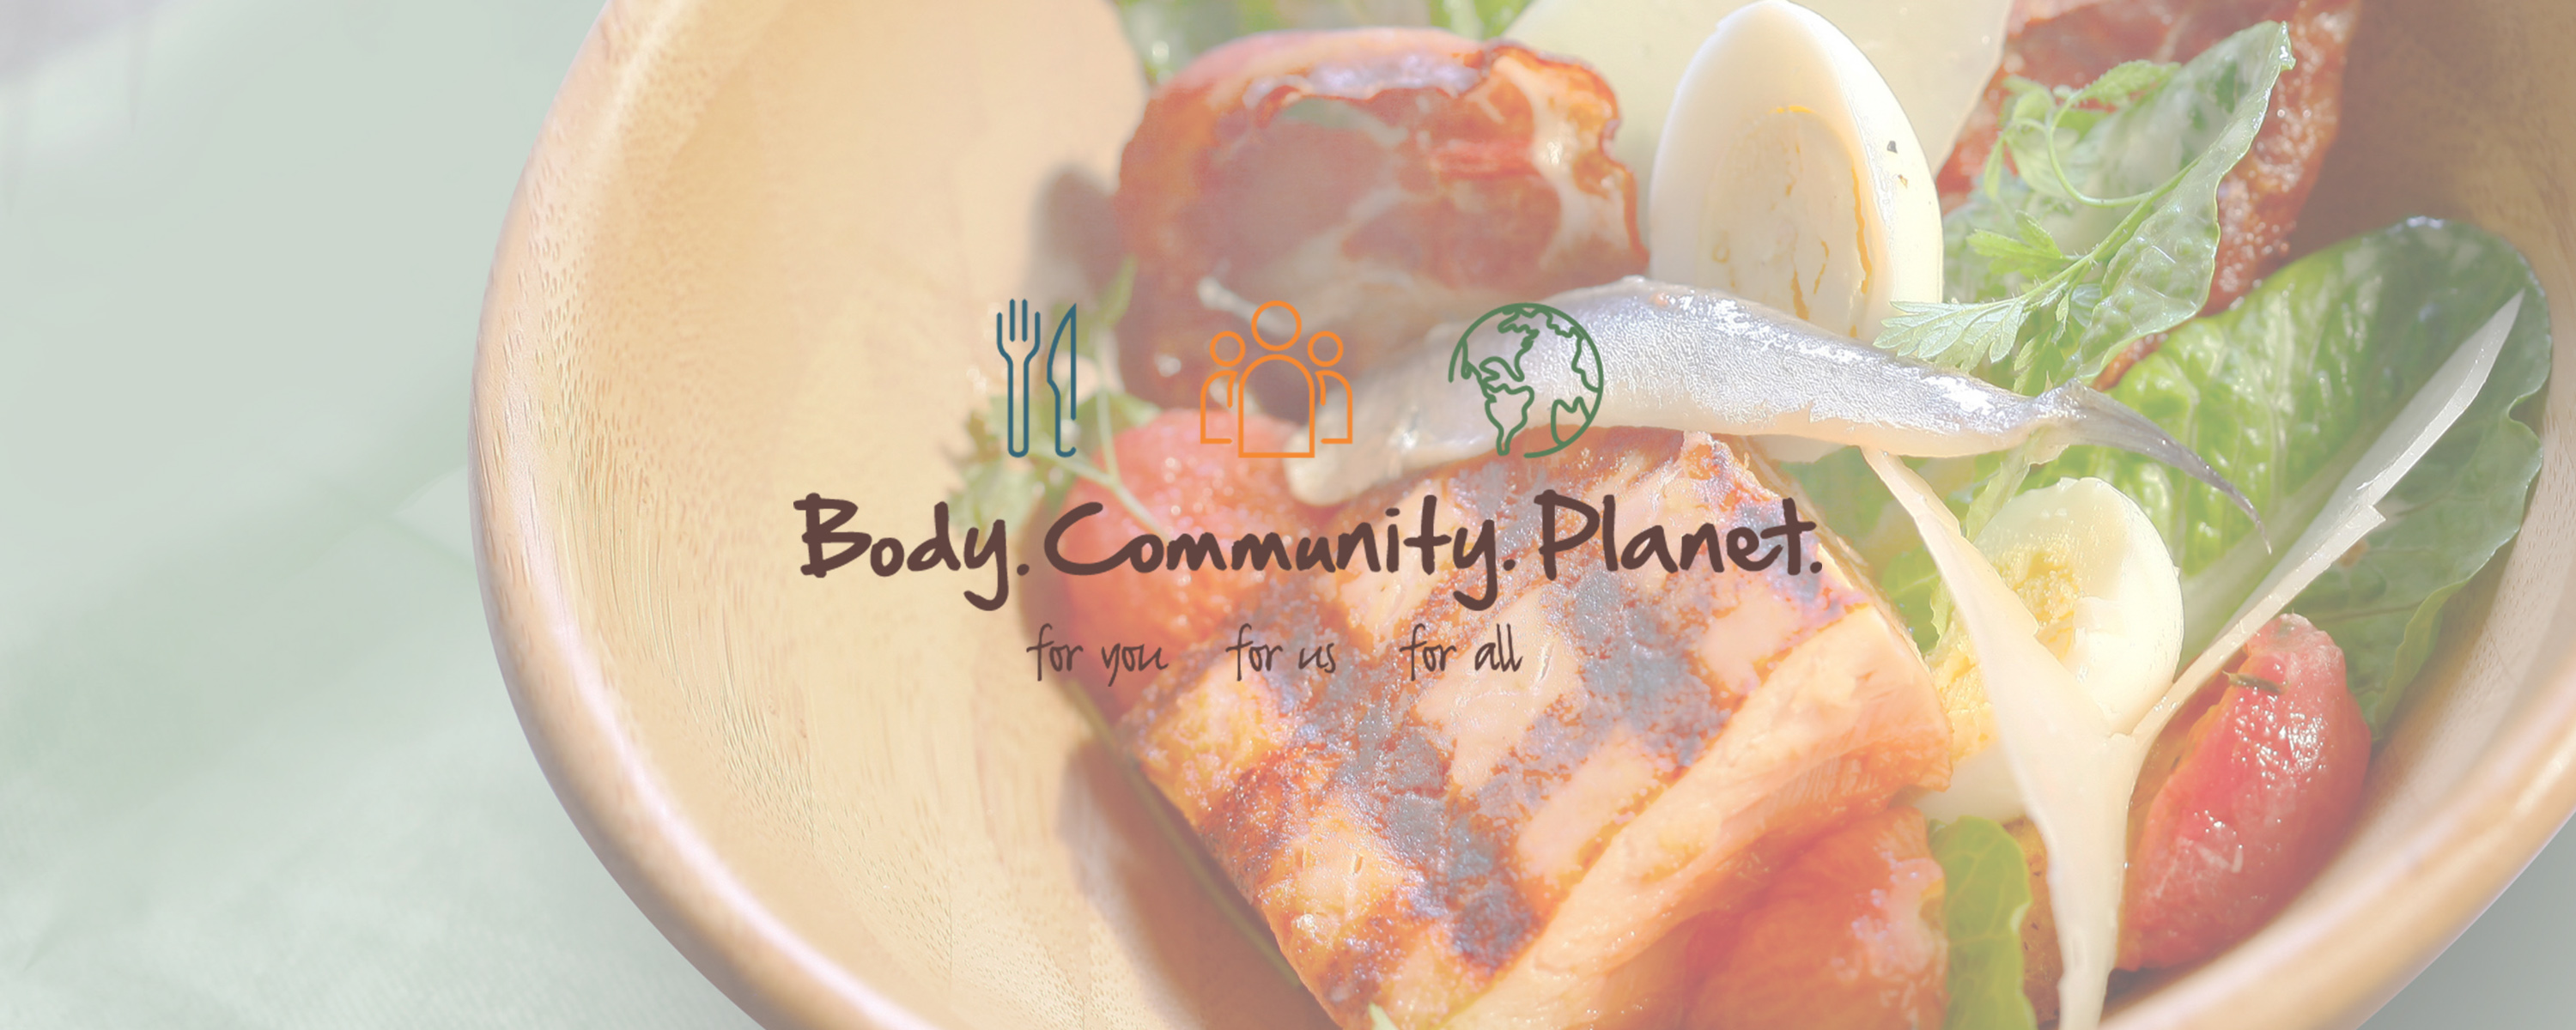 body. community. planet. for you. for us. for all.